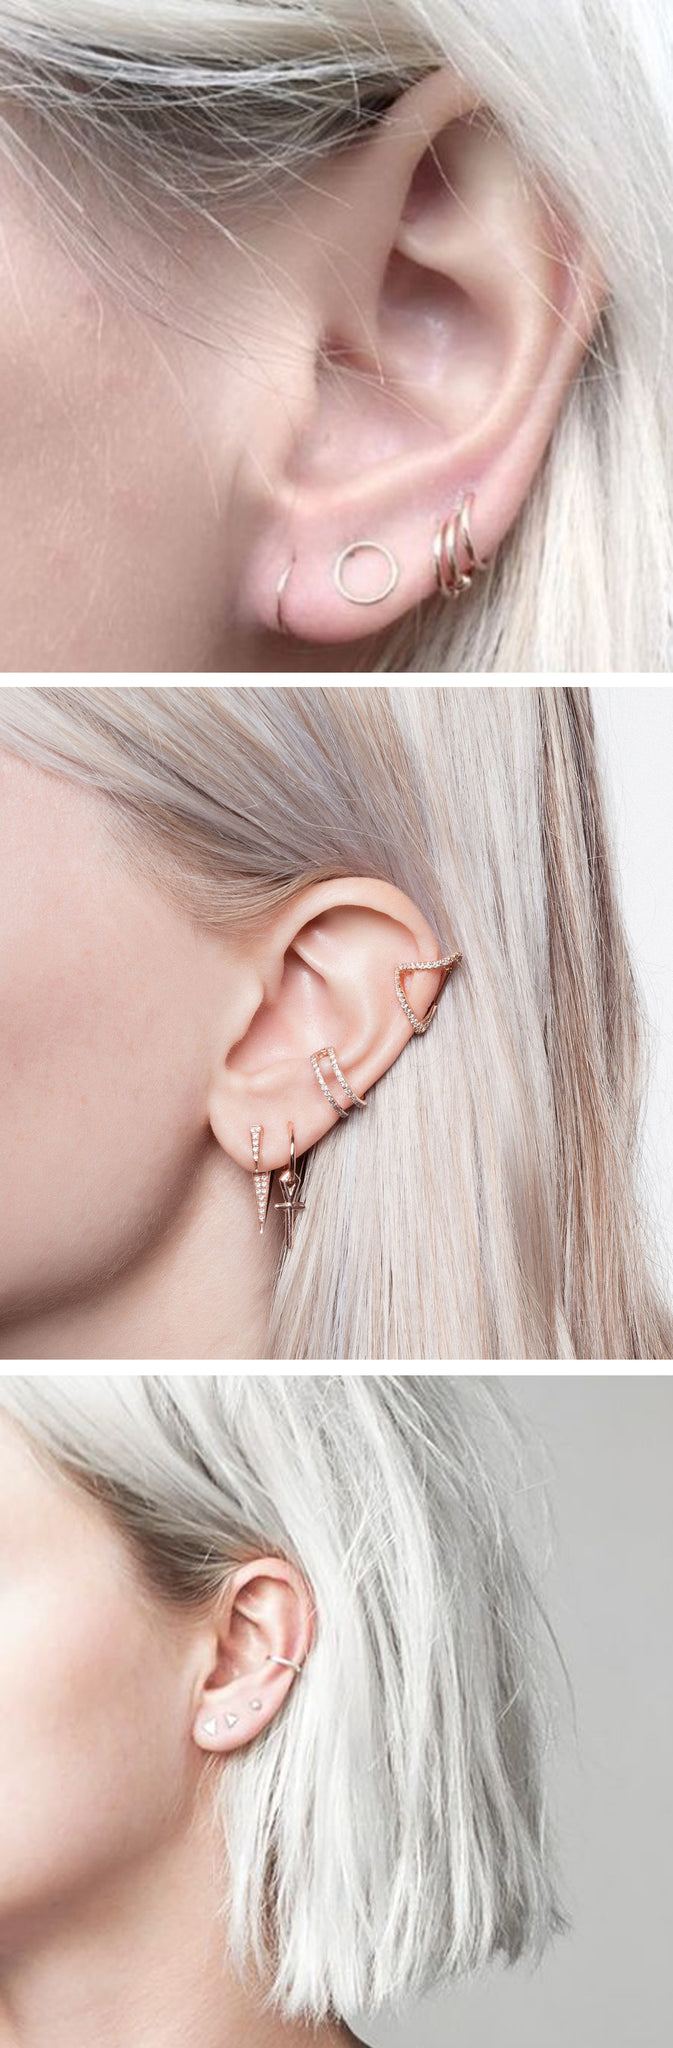 Minimalist Multiple Ear Piercing Ideas - Simple Cartilage Conch Lobe Gold Earring Ring Hoop Studs at MyBodiArt.com